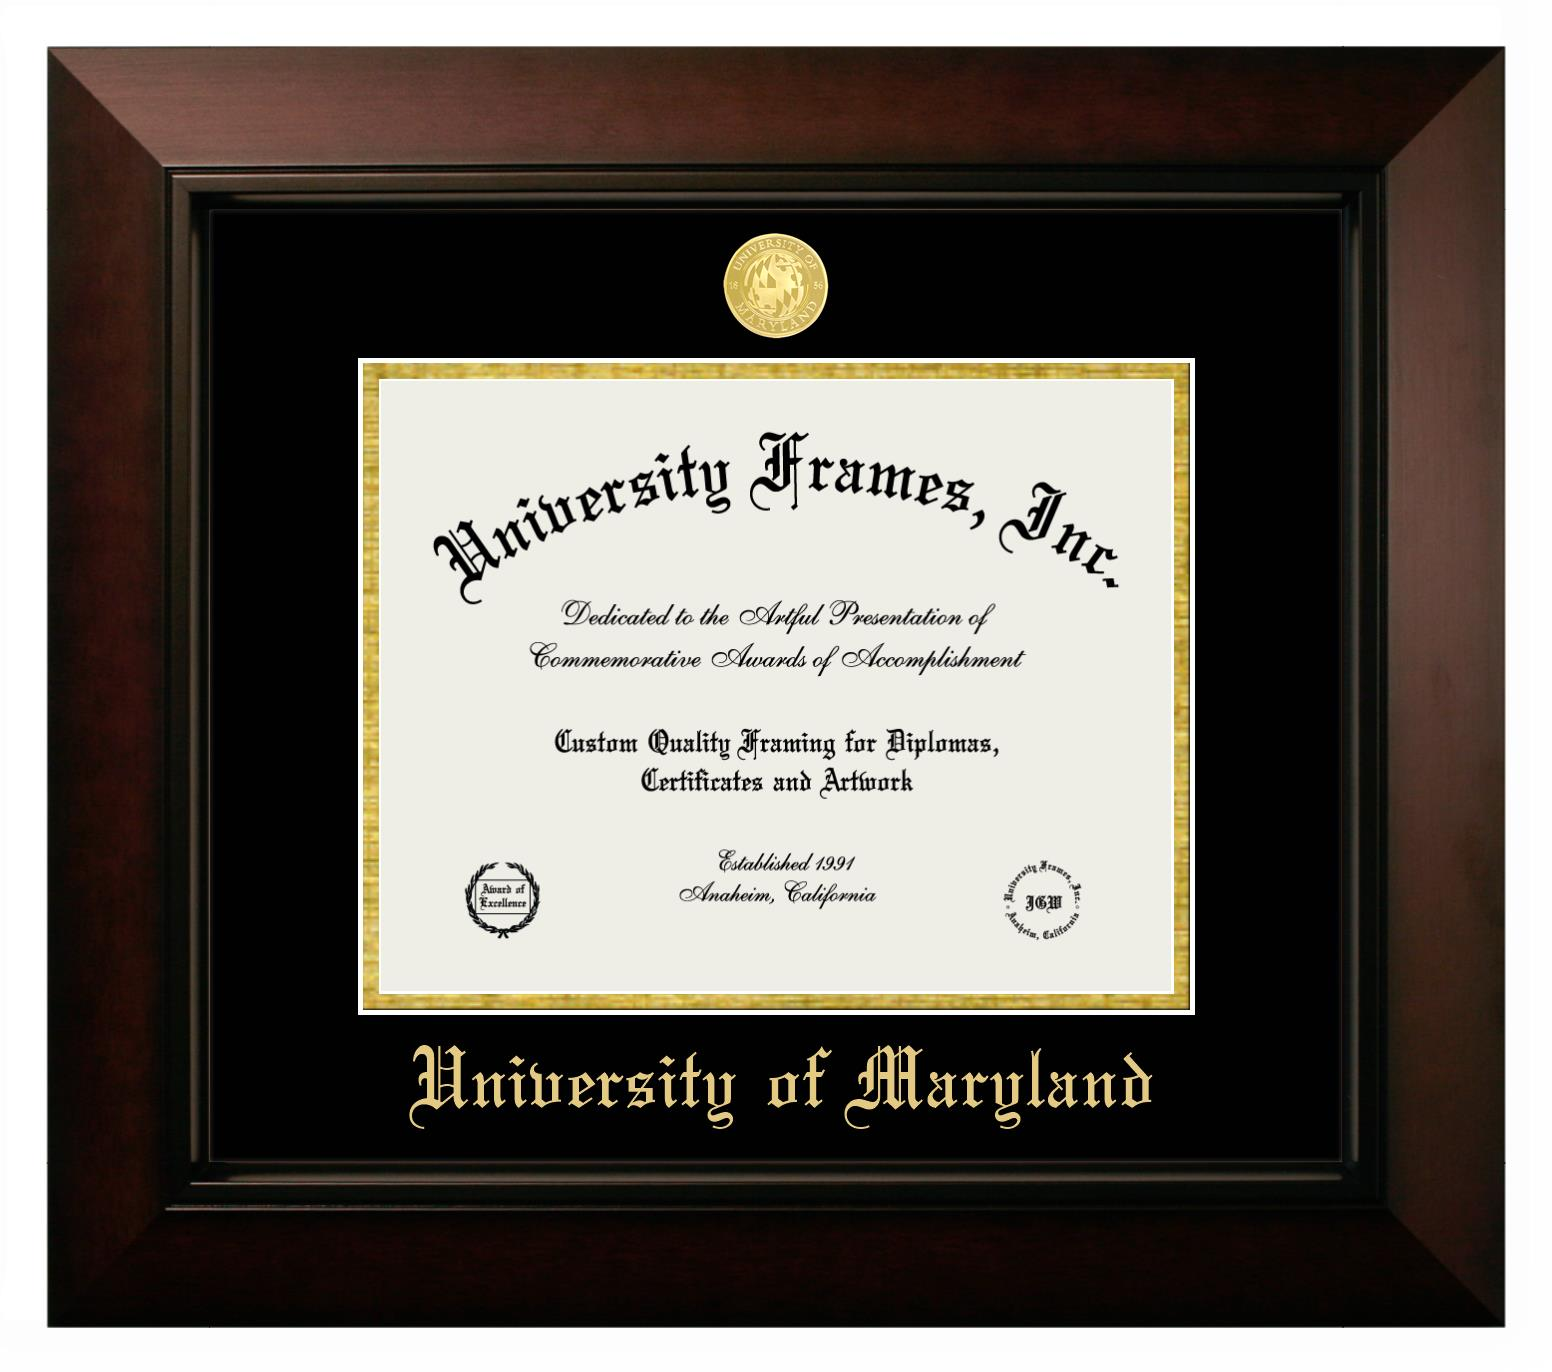 University Of Maryland Diploma Frame In Legacy Black Cherry With Black Gold Mats